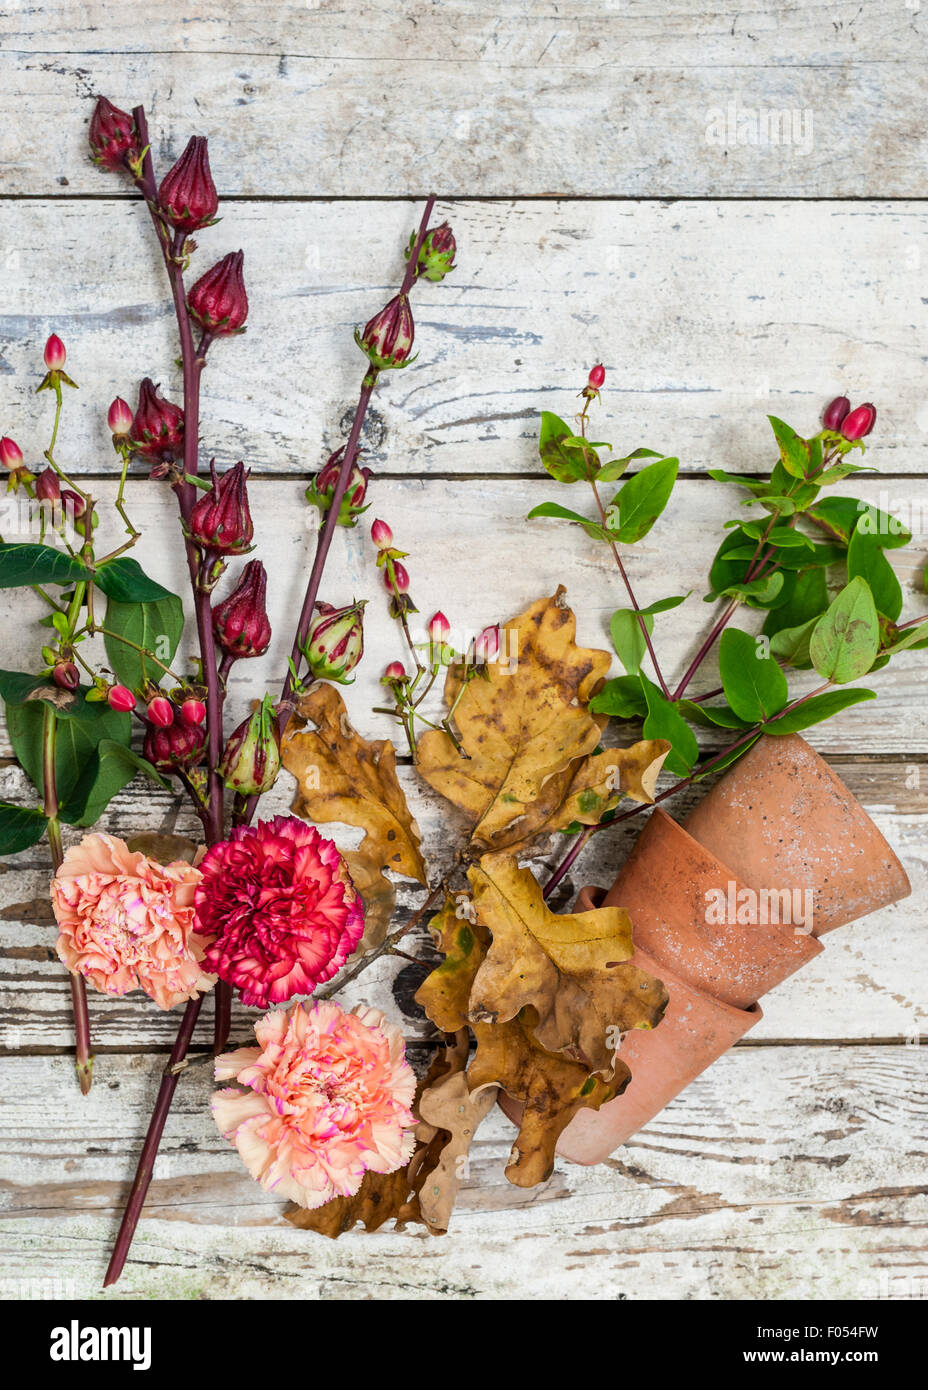 autimn flowers and berries on a rustic surface - Stock Image